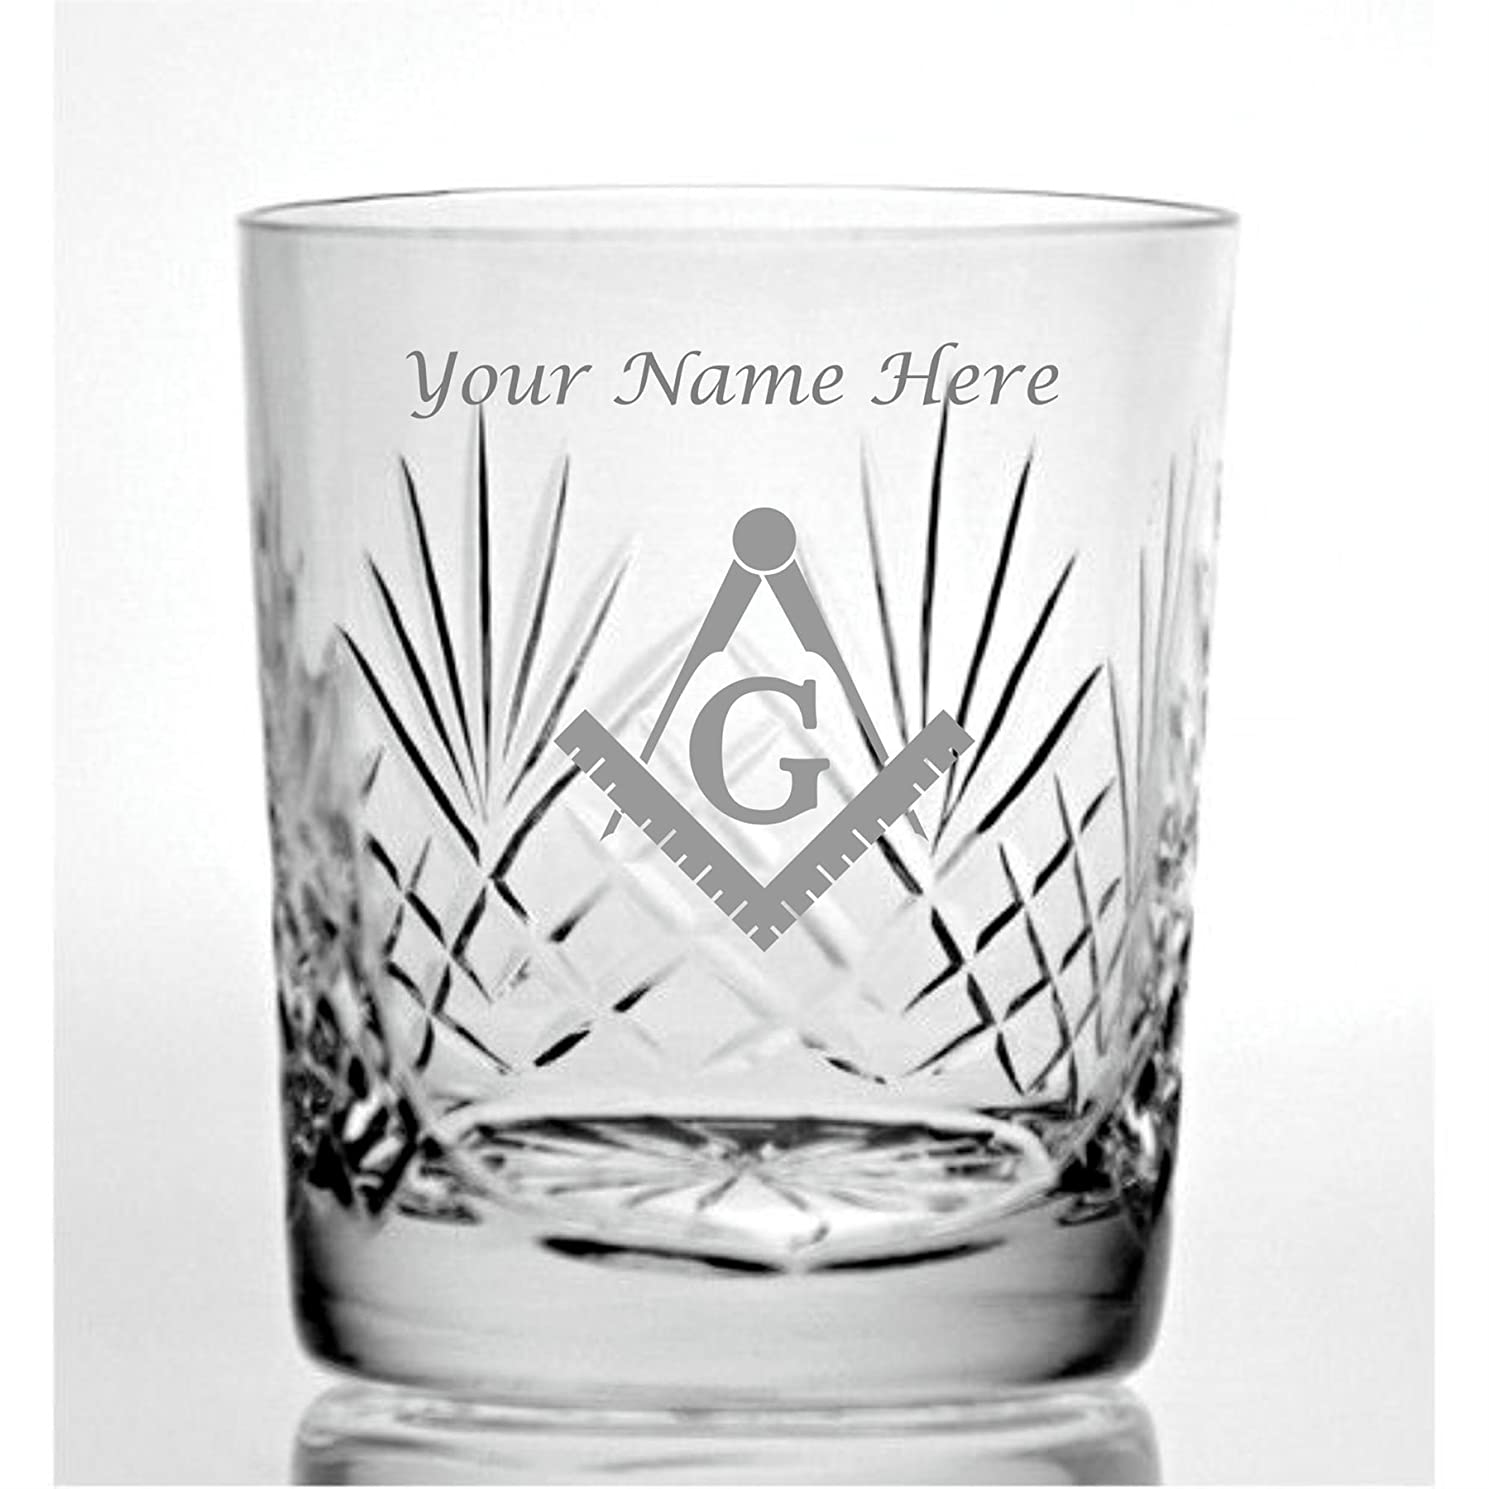 Personalised Engraved Cut Crystal 9oz Whisky Glass With Masonic Design